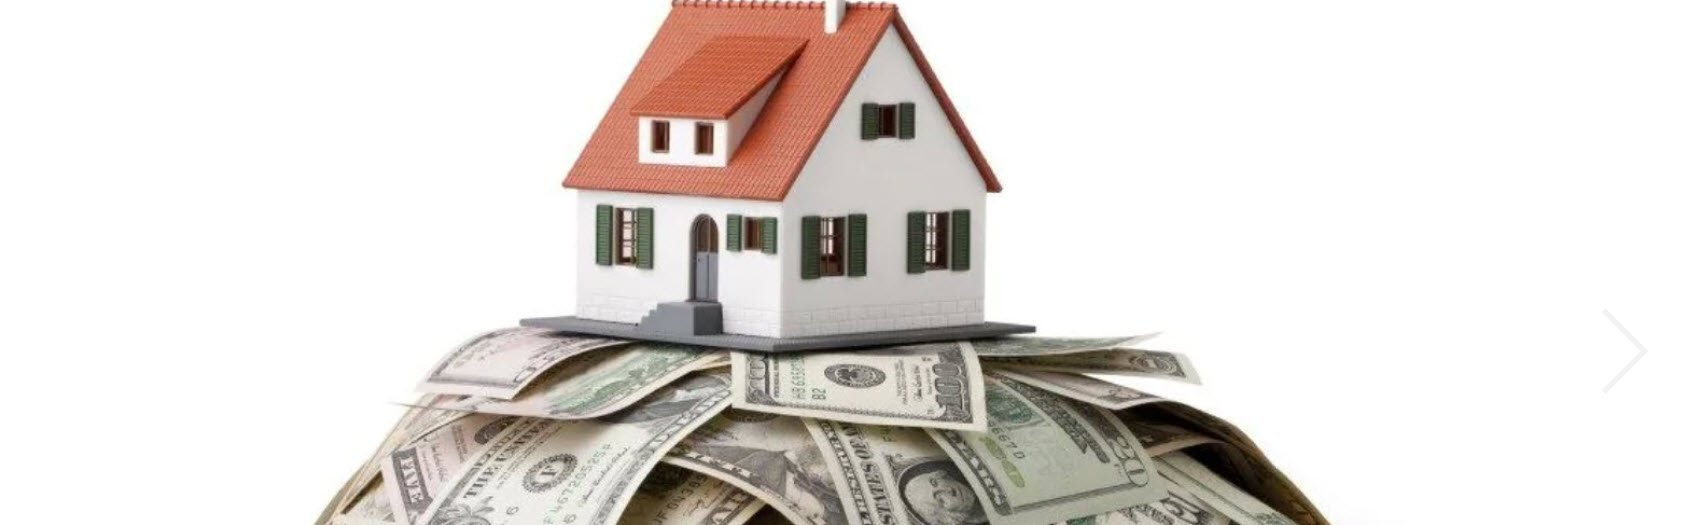 Where Can A First Time Home Buyer Get A Cash Grant